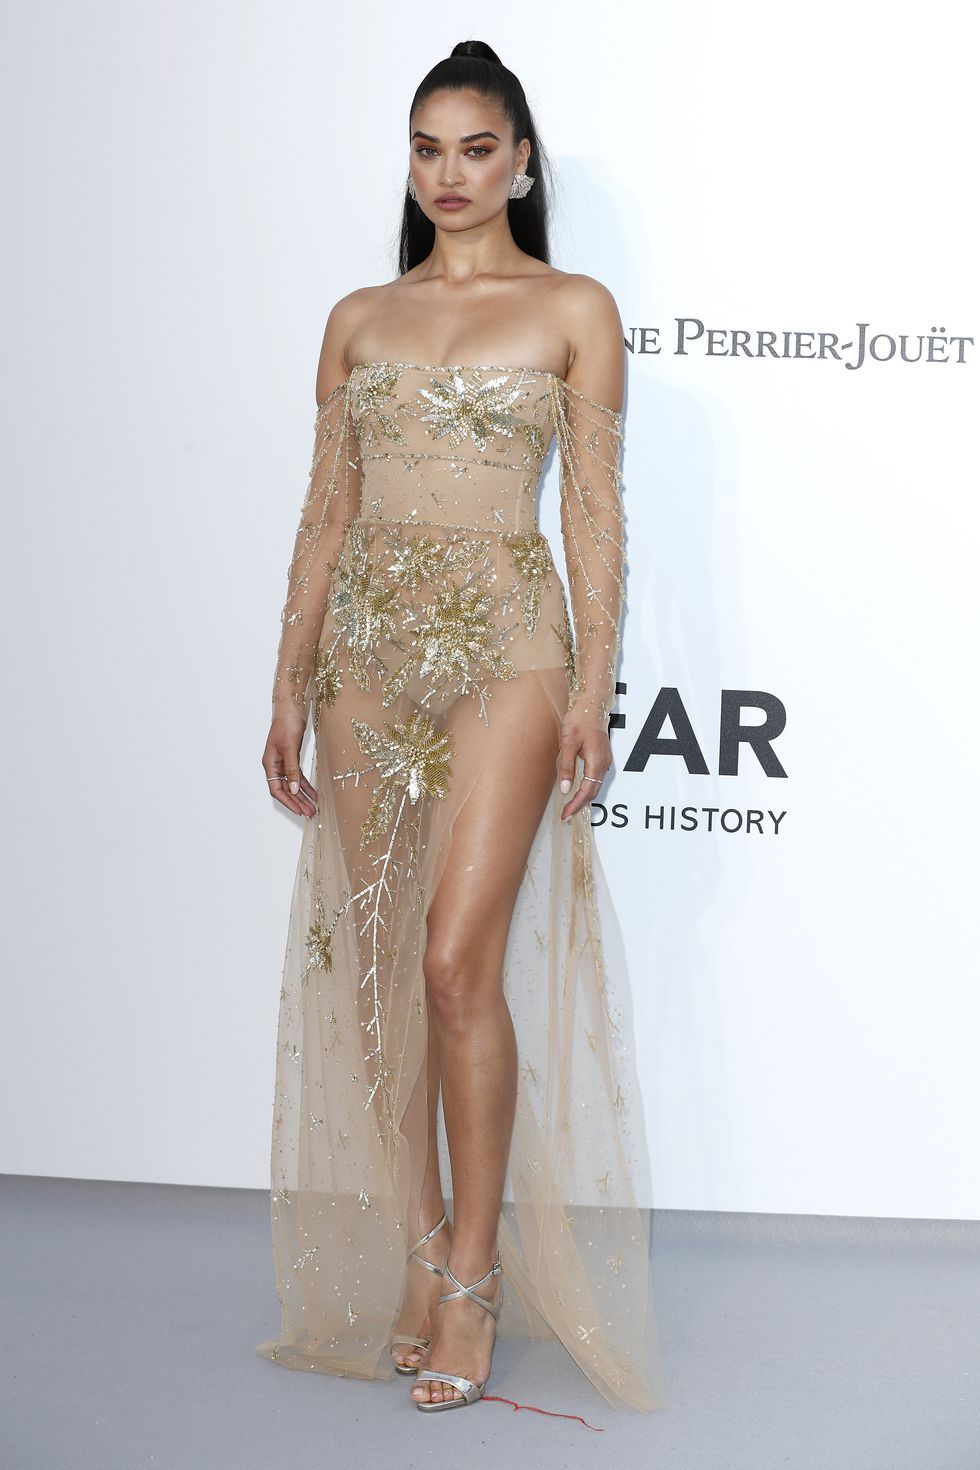 Shanina Shaik In an embellished sheer nude dress by Georges Hobeika.